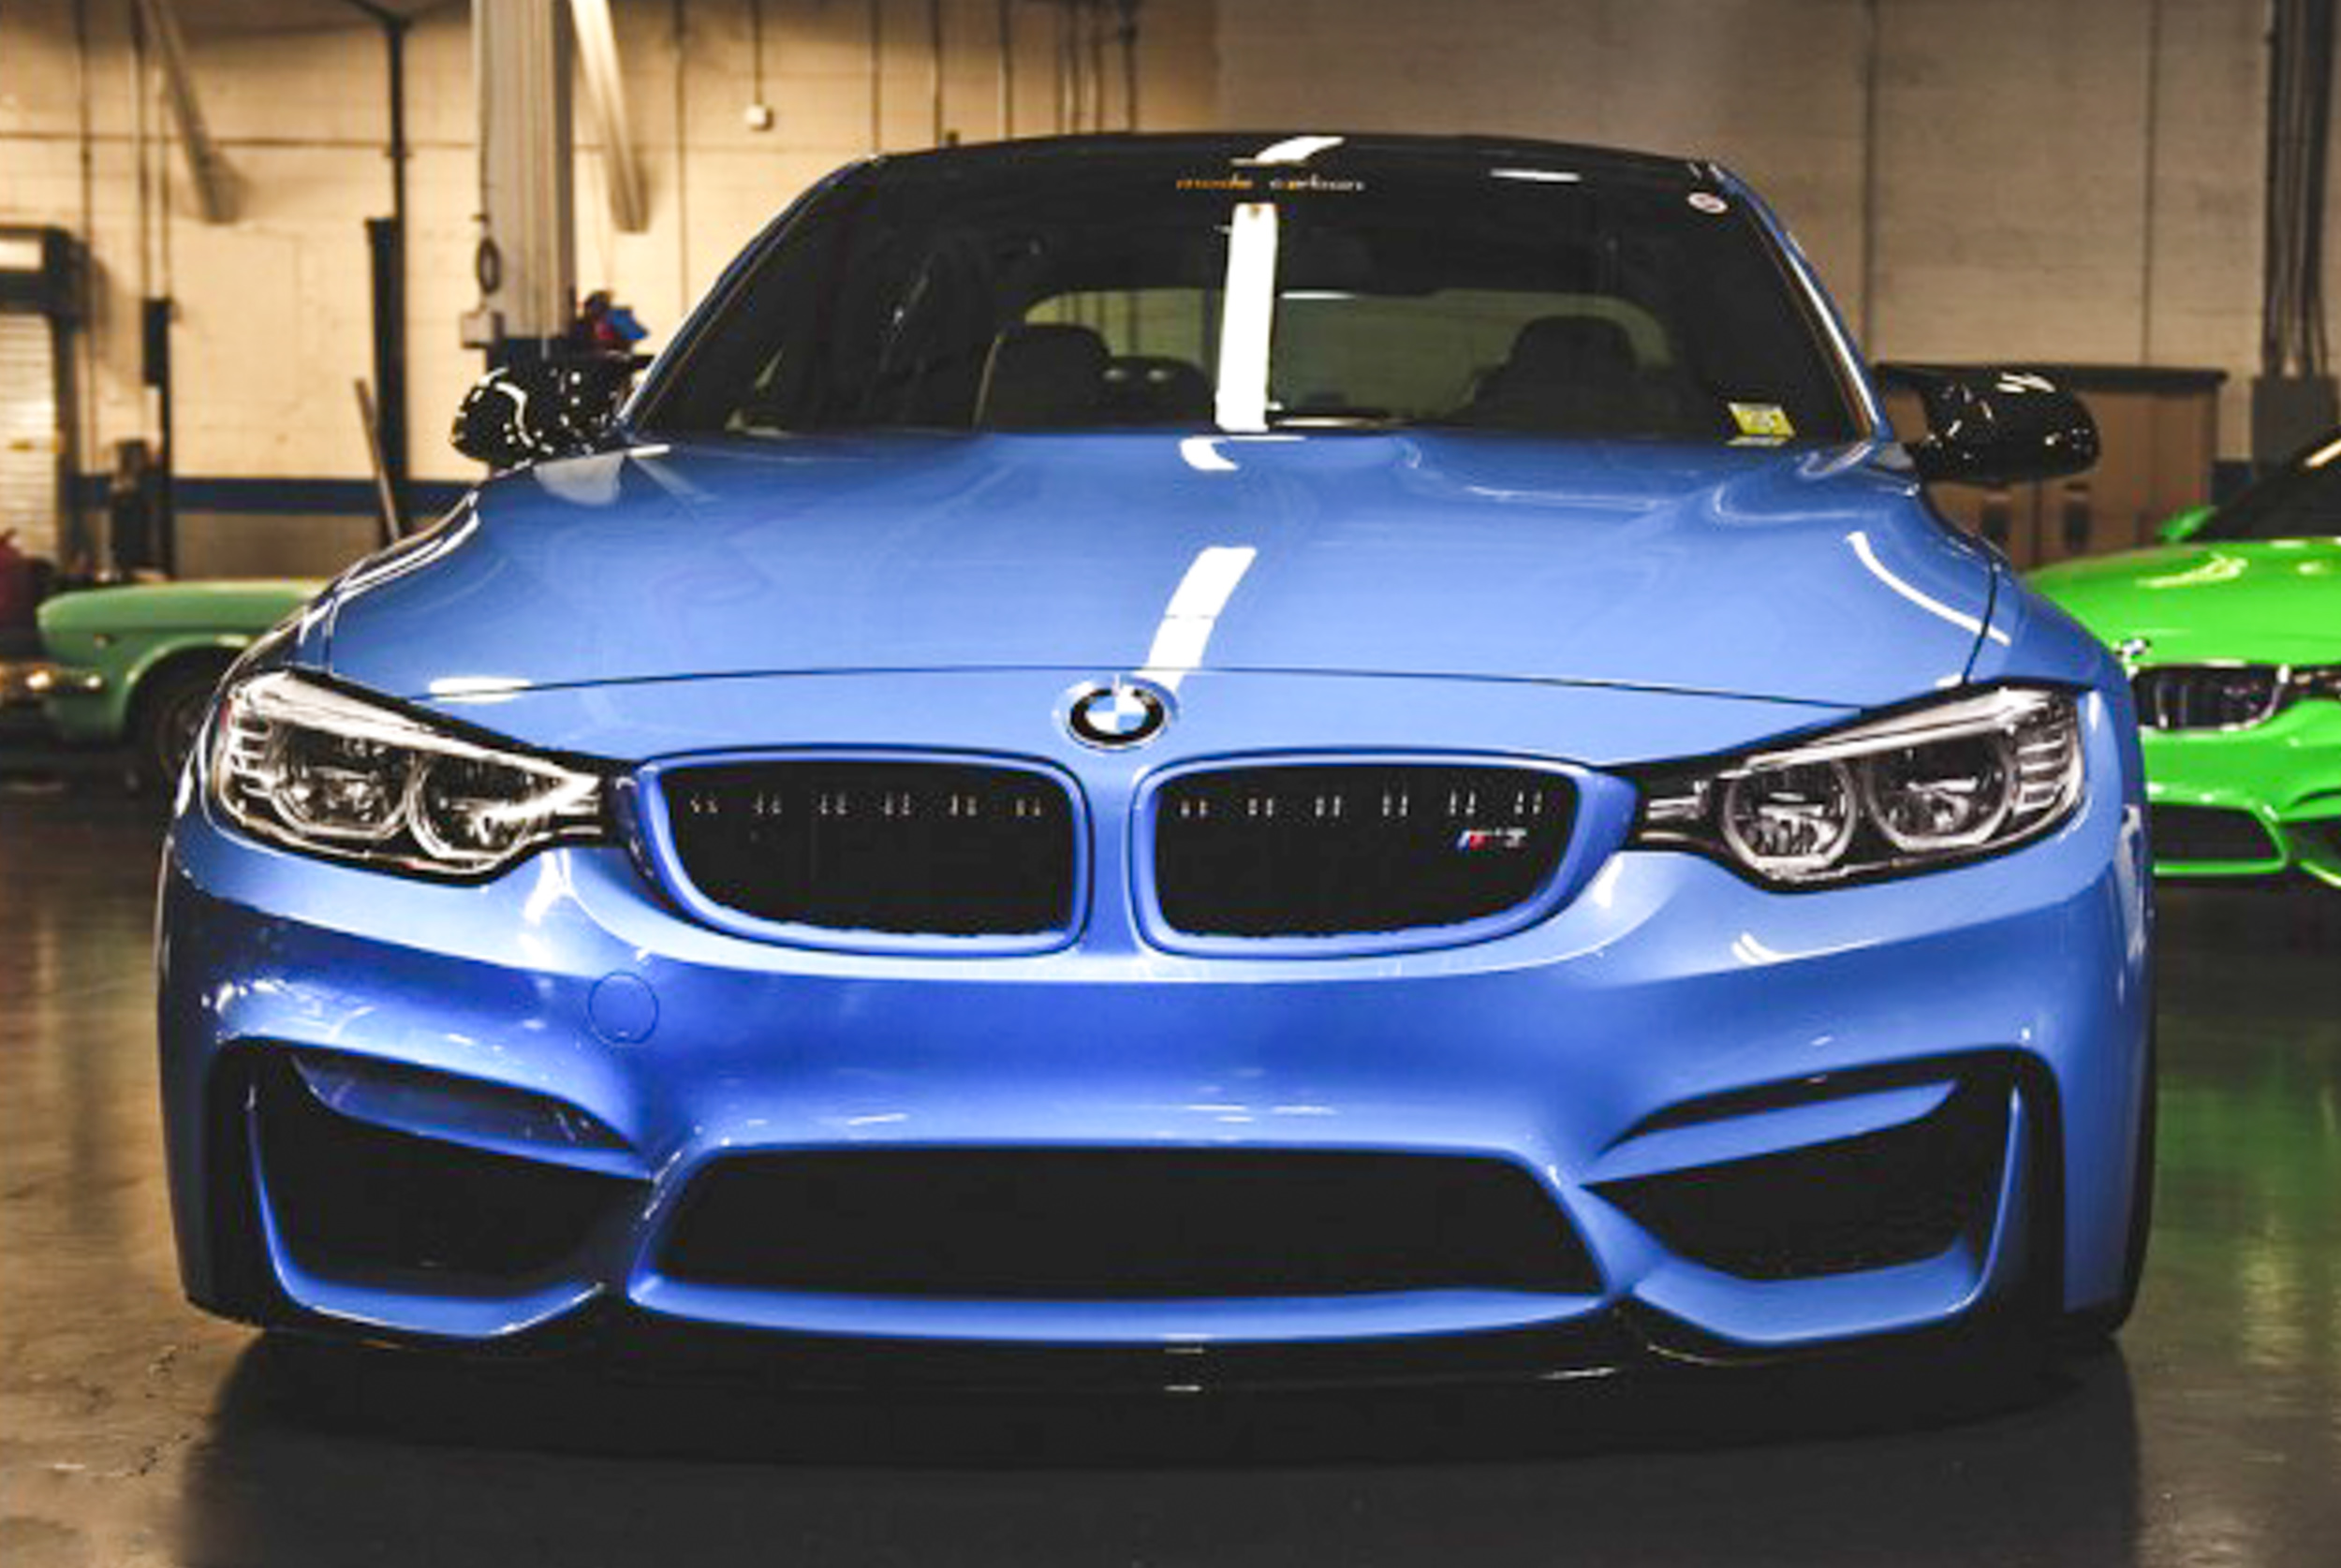 Painted Kidney Grille Surrounds For 2014 Bmw M3 M4 F80